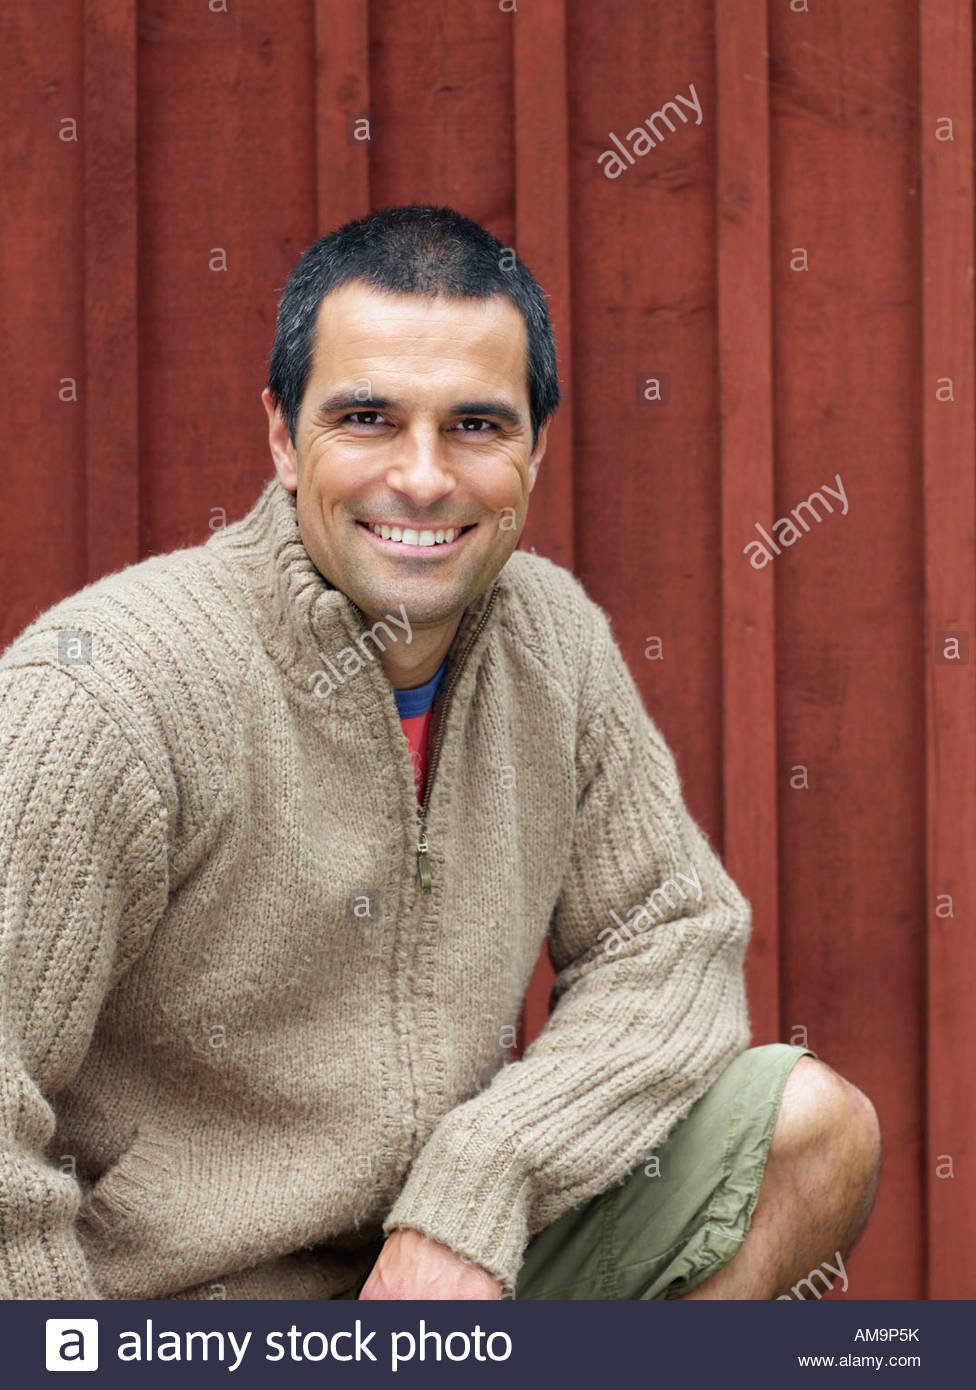 Man crouching in front of red wall smiling. - Stock Image